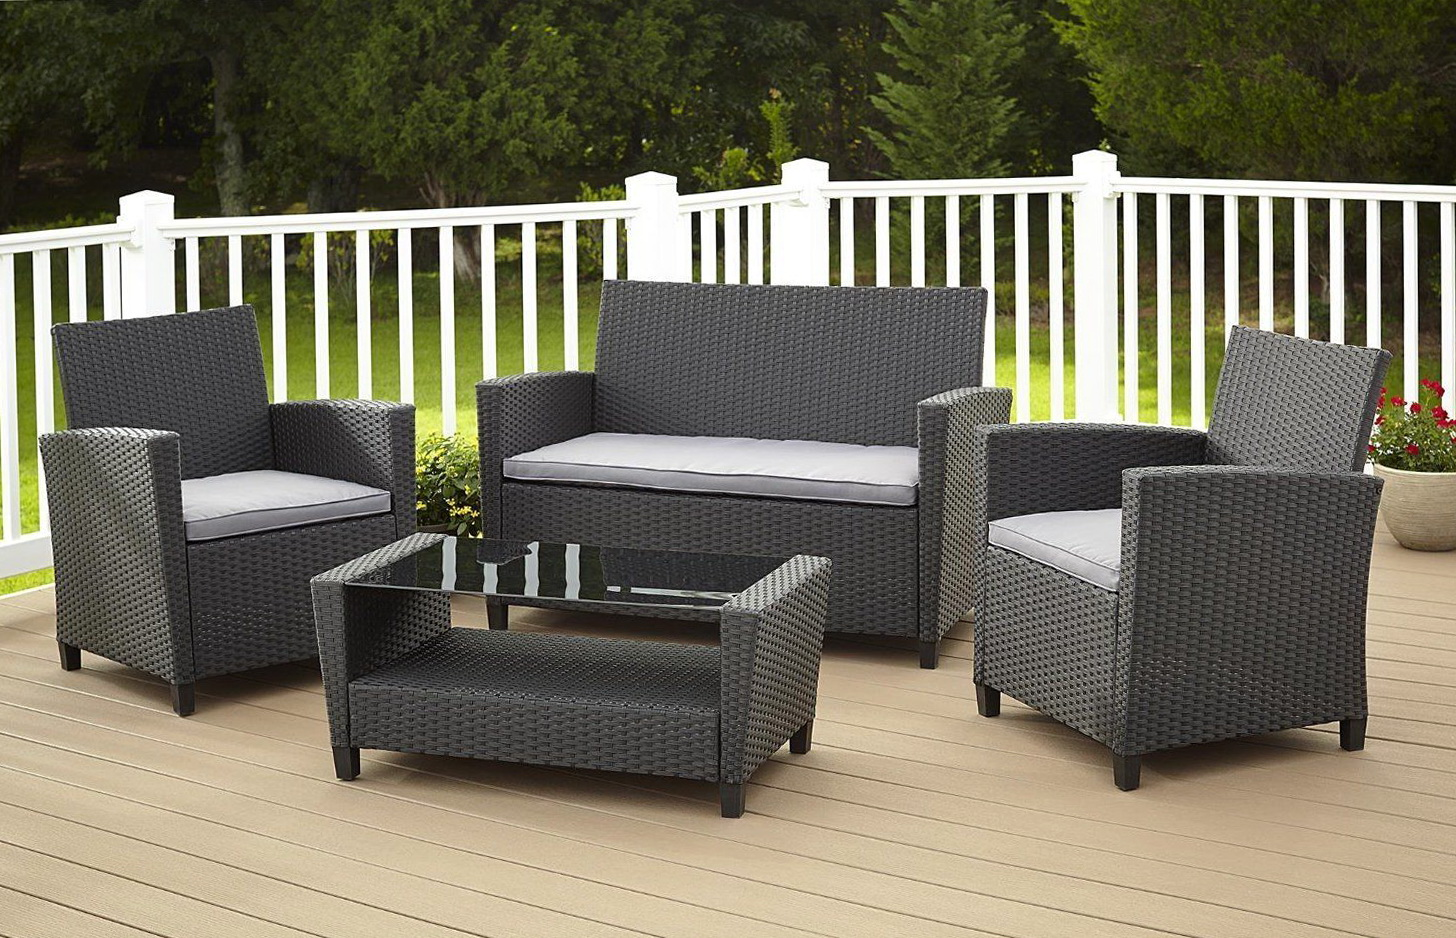 Outdoor Wicker Furniture Cushions Sets Home Design Ideas